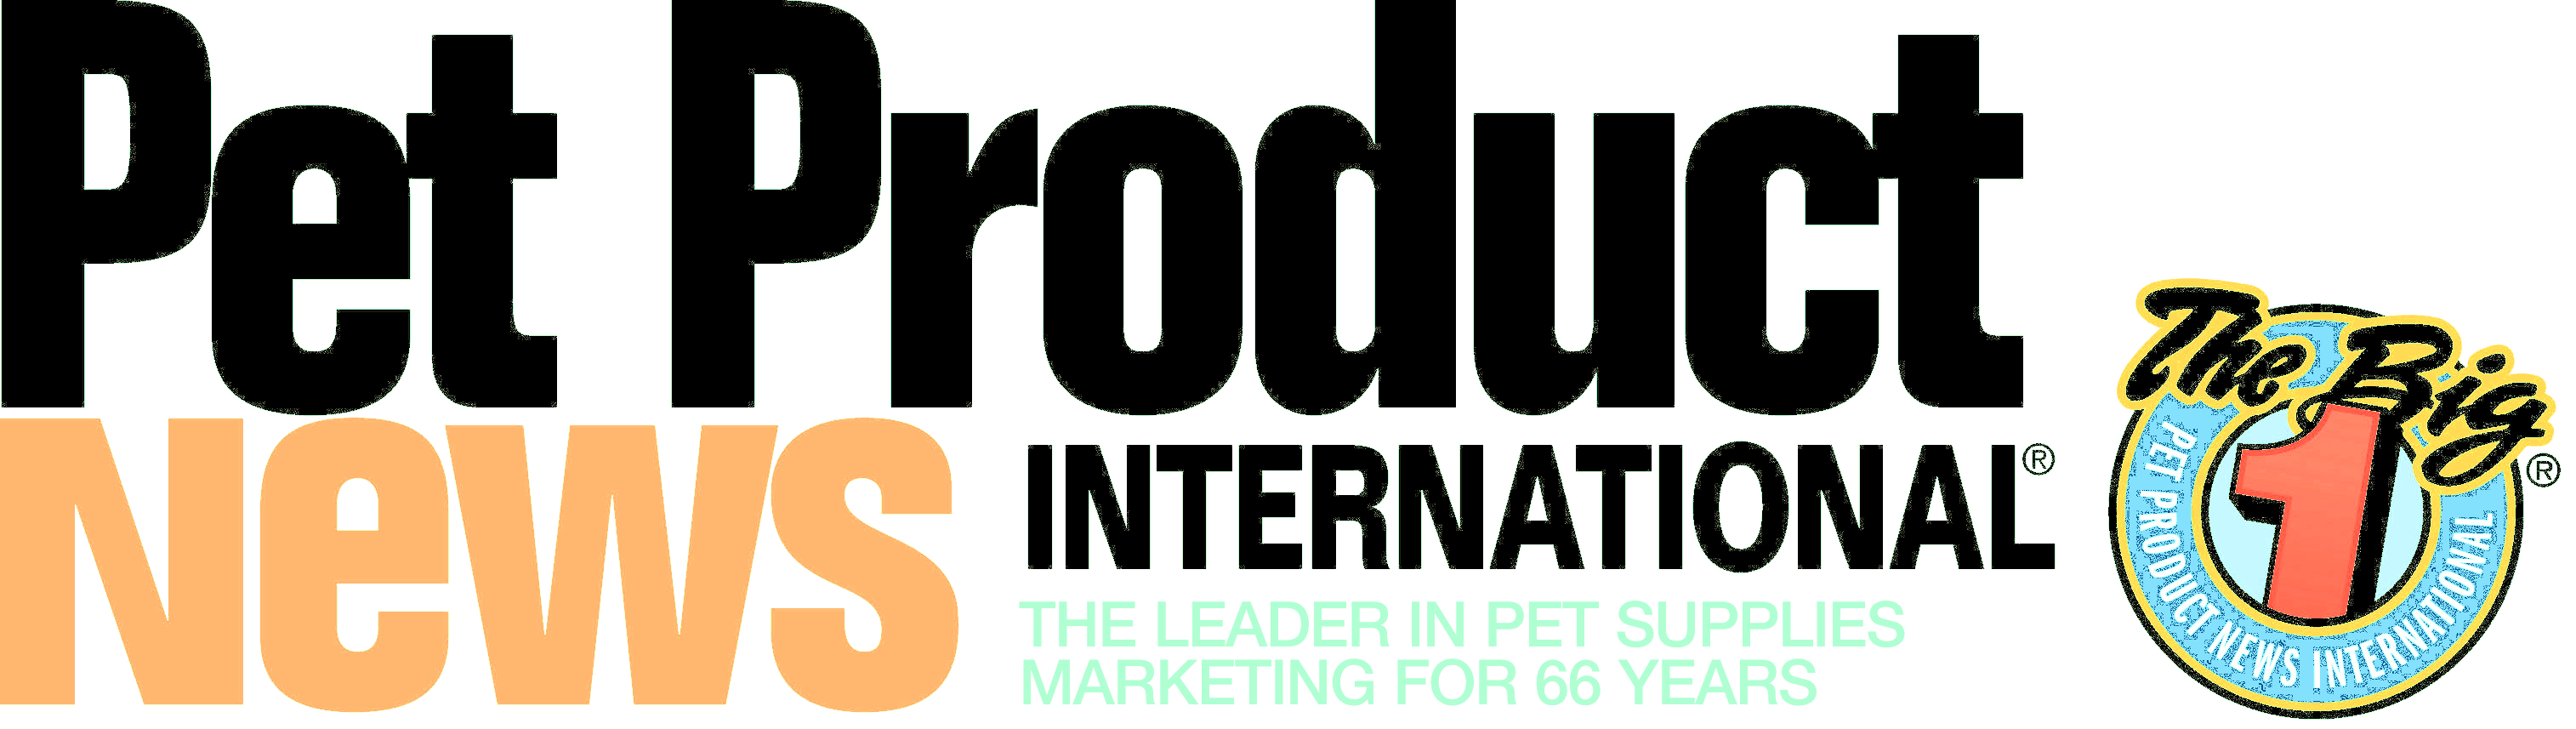 Pet Product News International Print Article